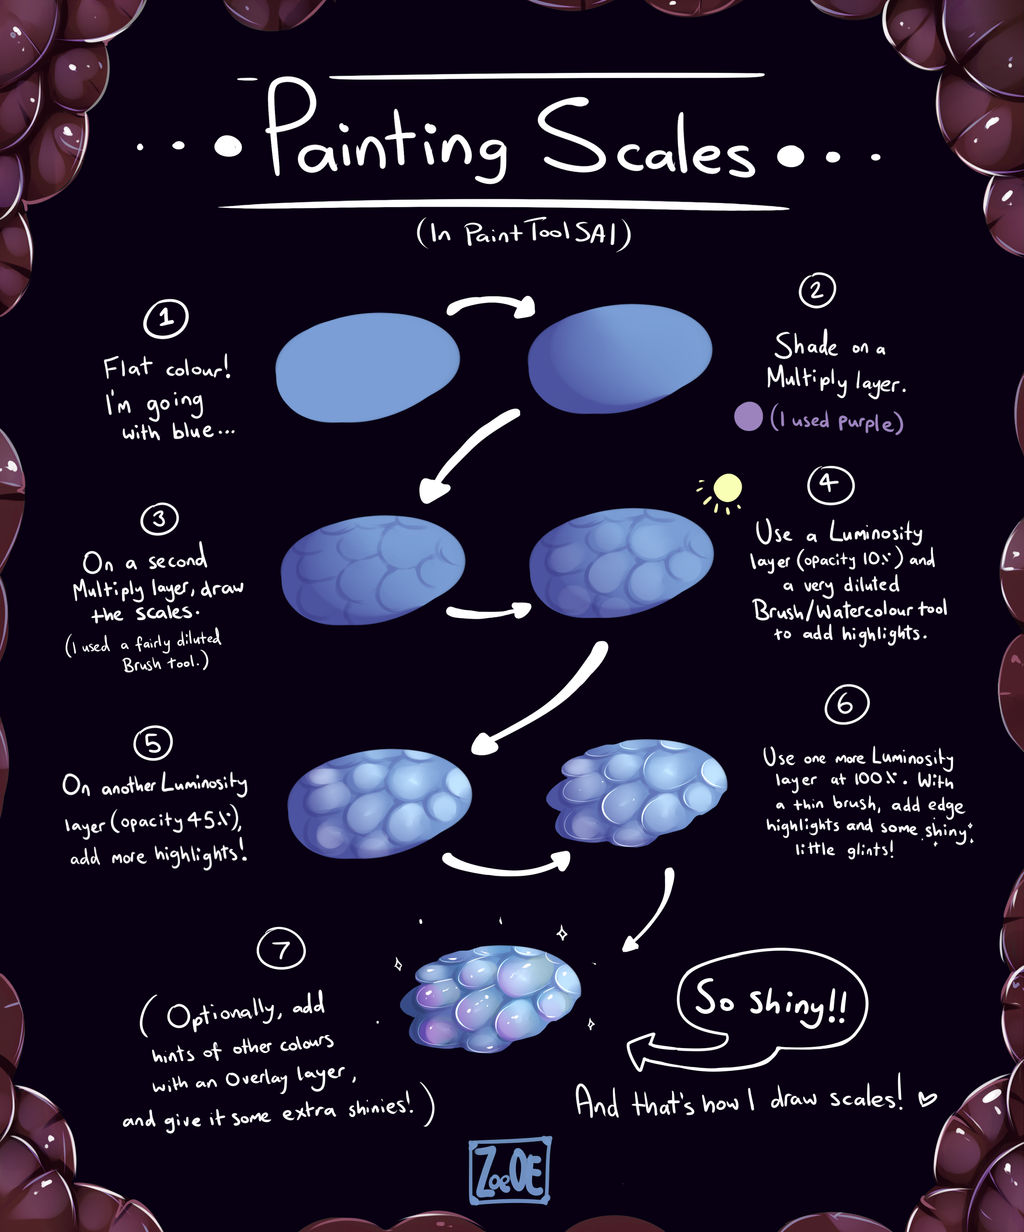 painting scales with Paint Tool SAI